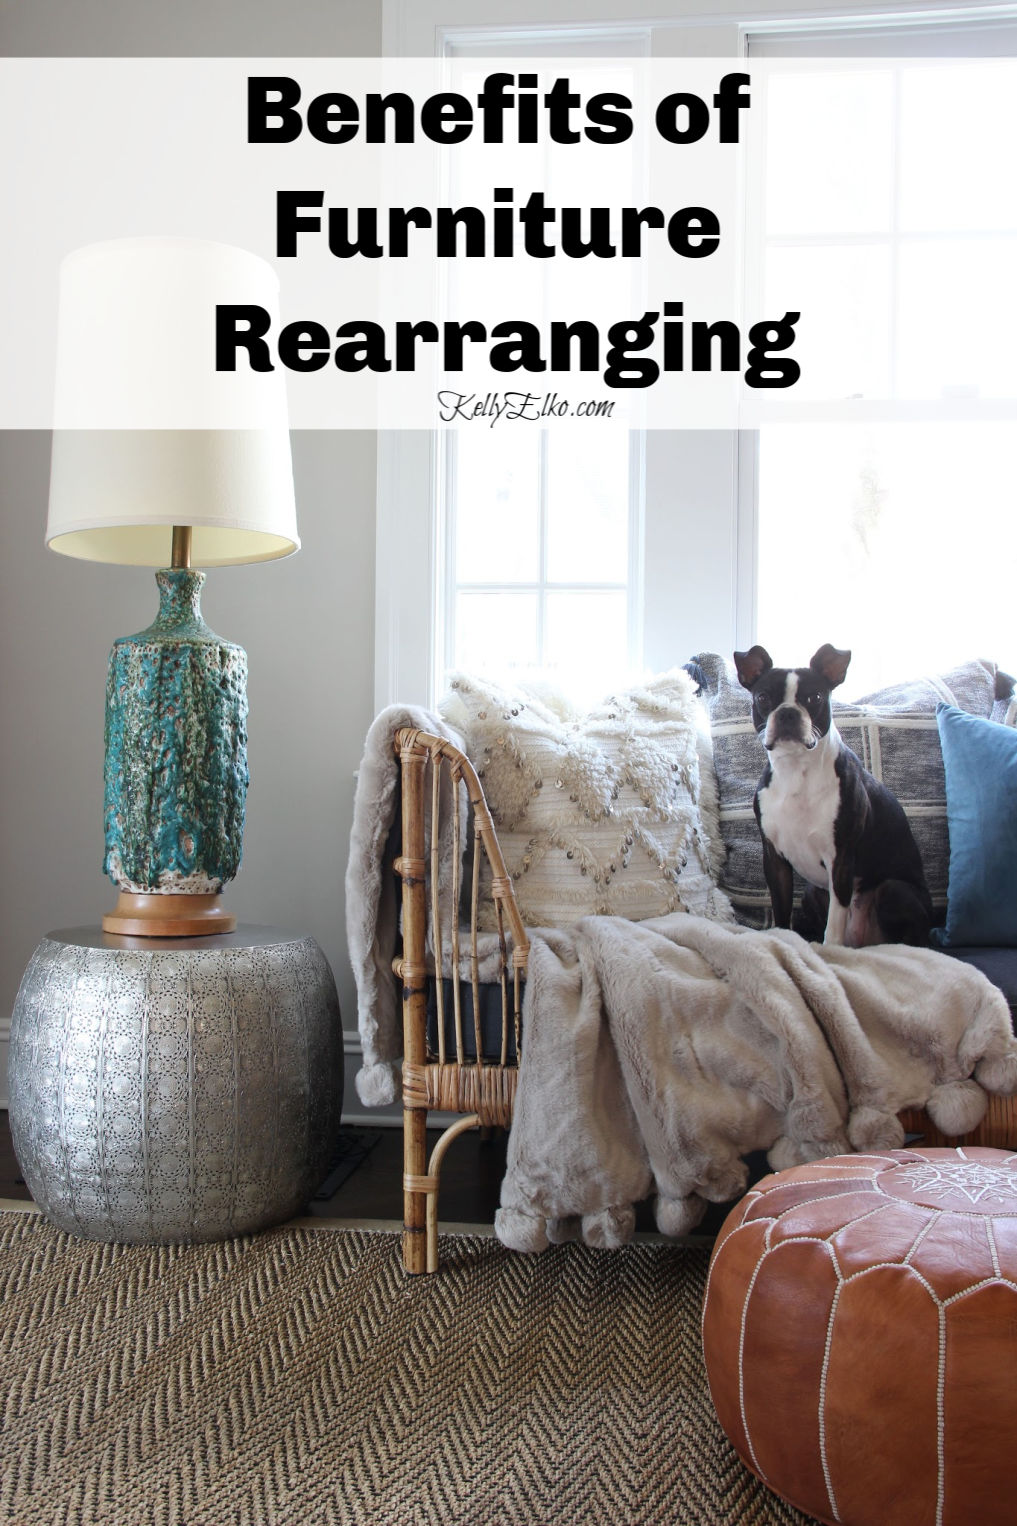 Benefits of Furniture Rearranging plus how to tips kellyelko.com #furniture #furnitureplacement #furniturerearranging #interiordesign #interiordecor #tipsandtricks #vintagedecor #eclecticdecor #bohodecor #kellyelko